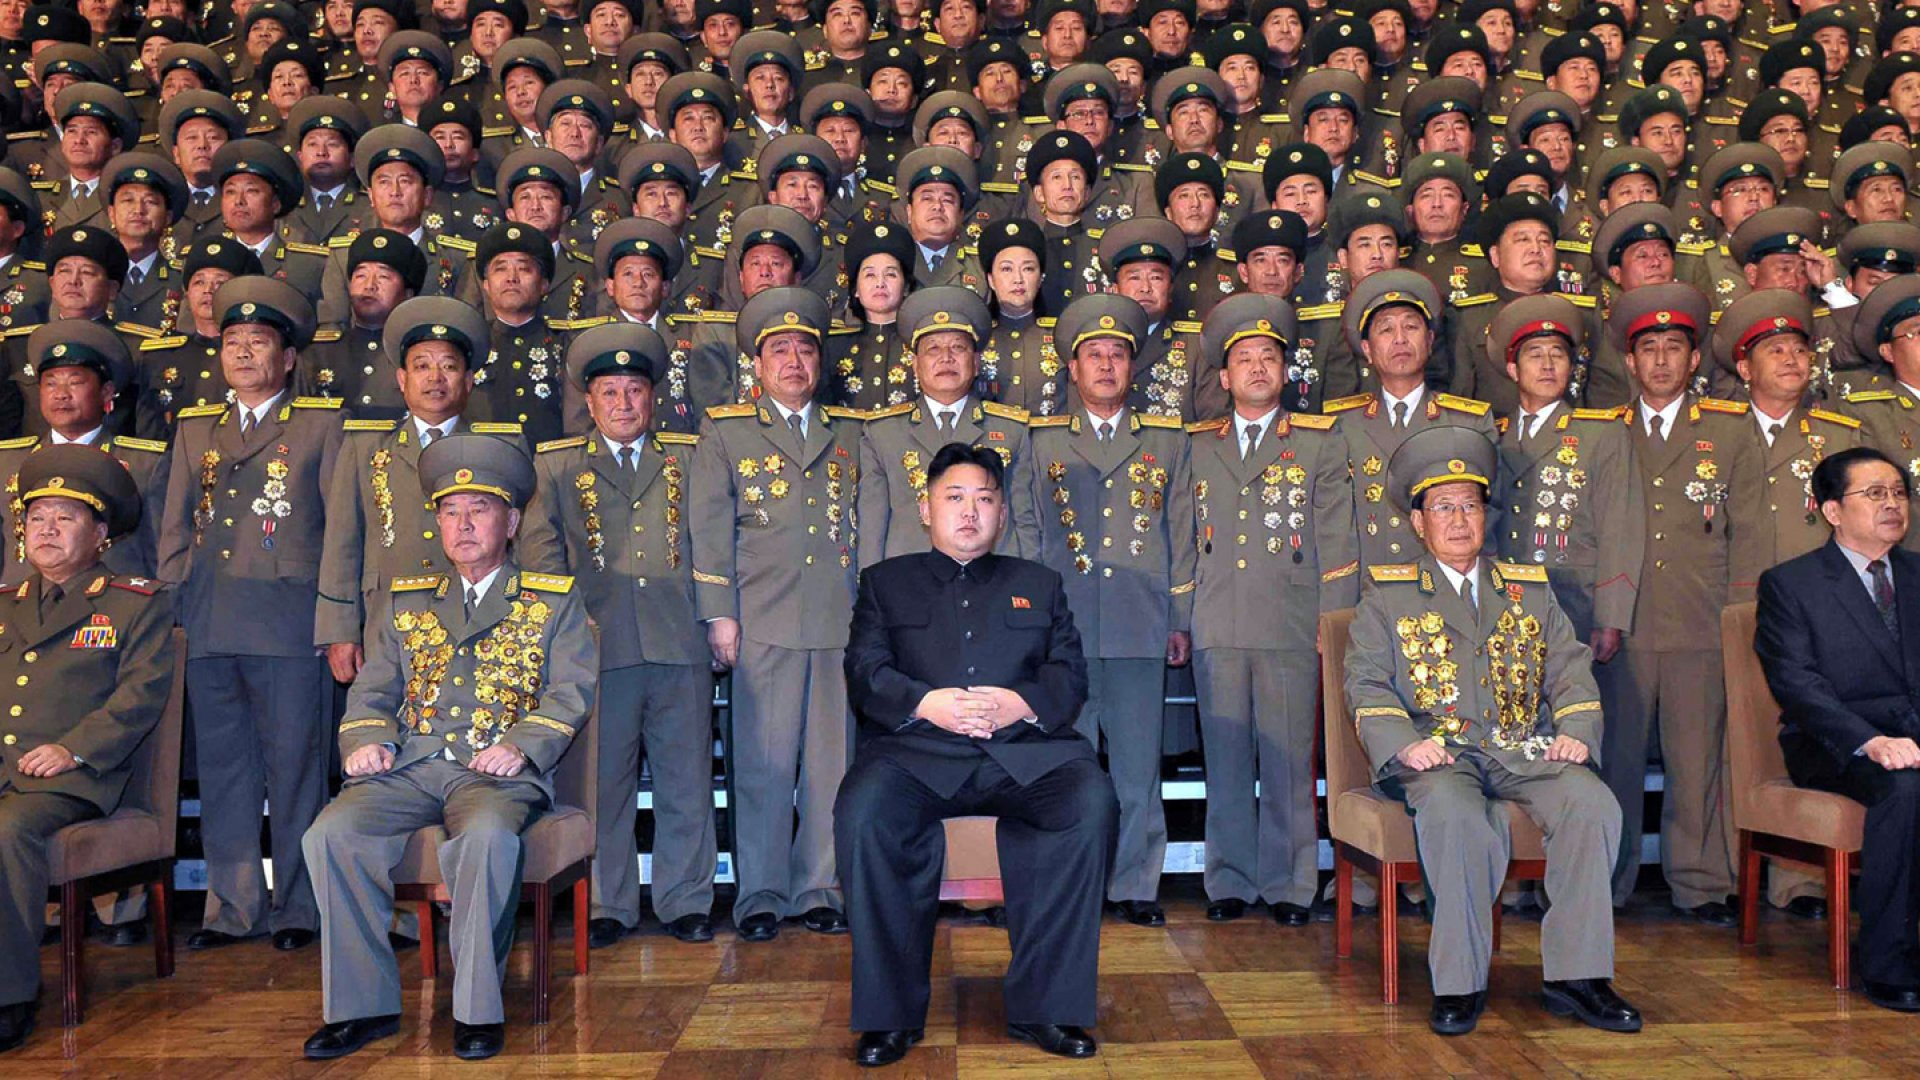 North Korean leader Kim Jong-un during a photo session with participants in the national meeting of chiefs of branch social security stations at an undisclosed location in North Korea. November 27, 2012